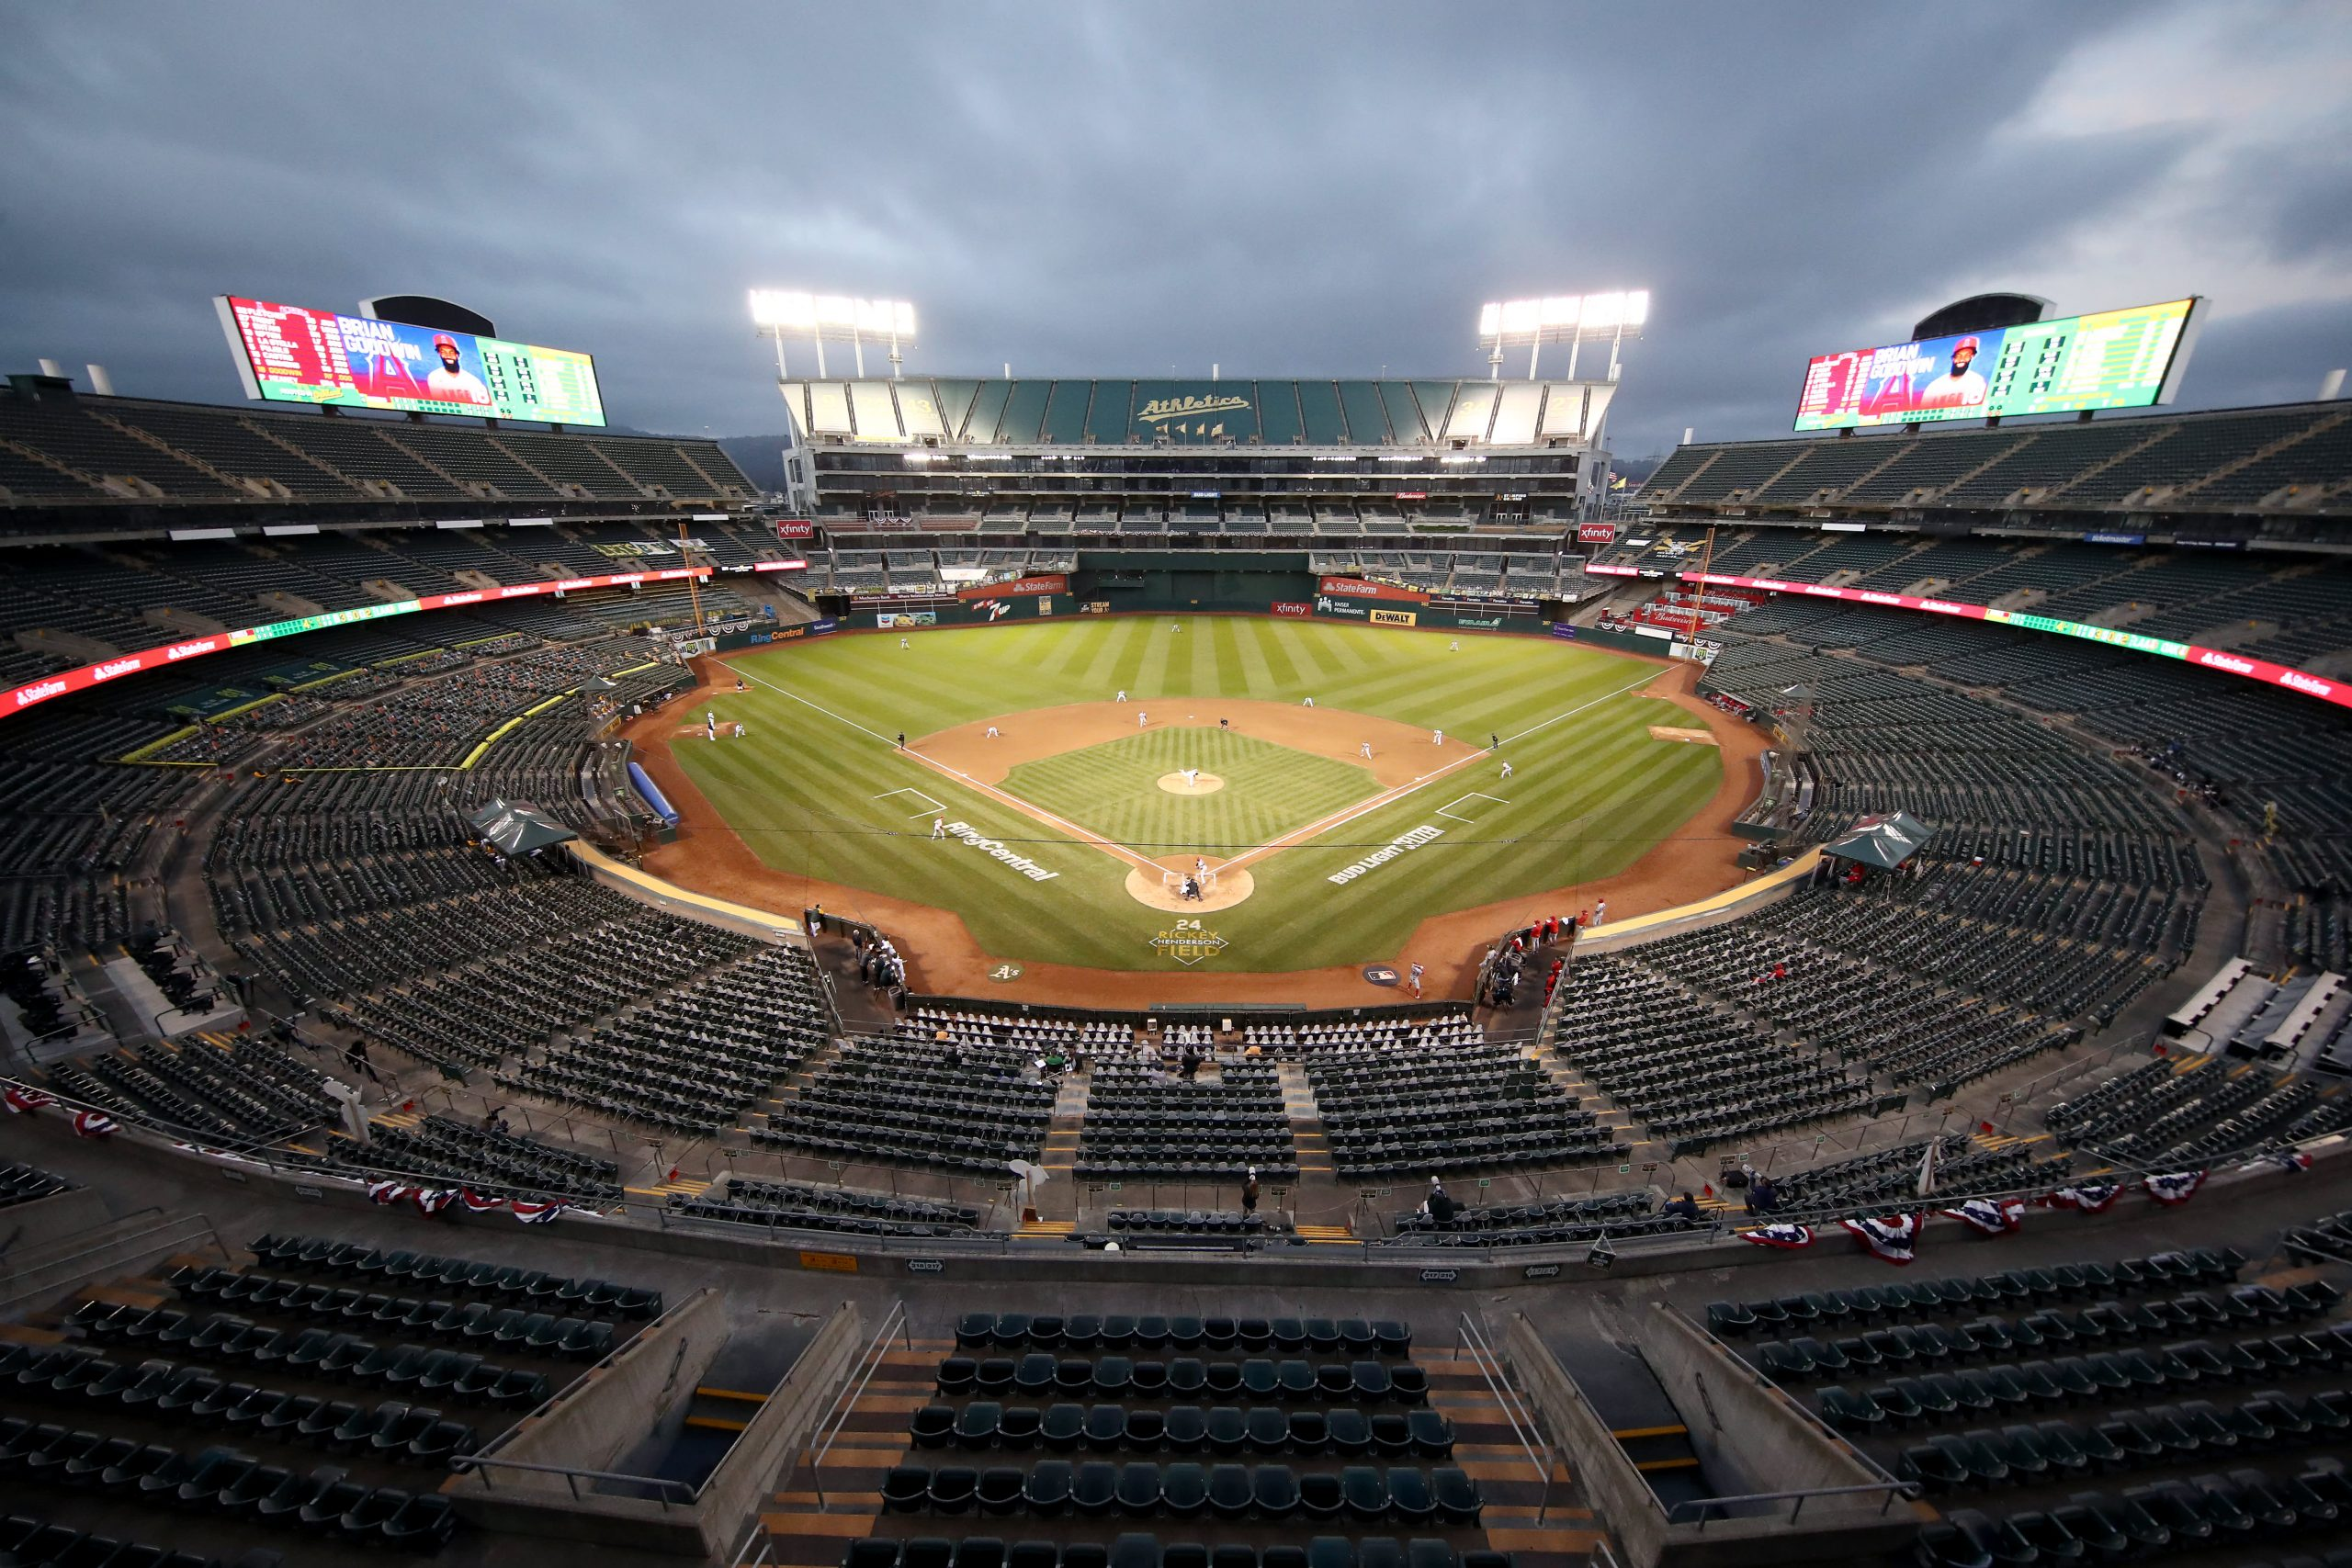 oakland-athletics-close-to-selling-first-64000-luxury-suite-using-bitcoin